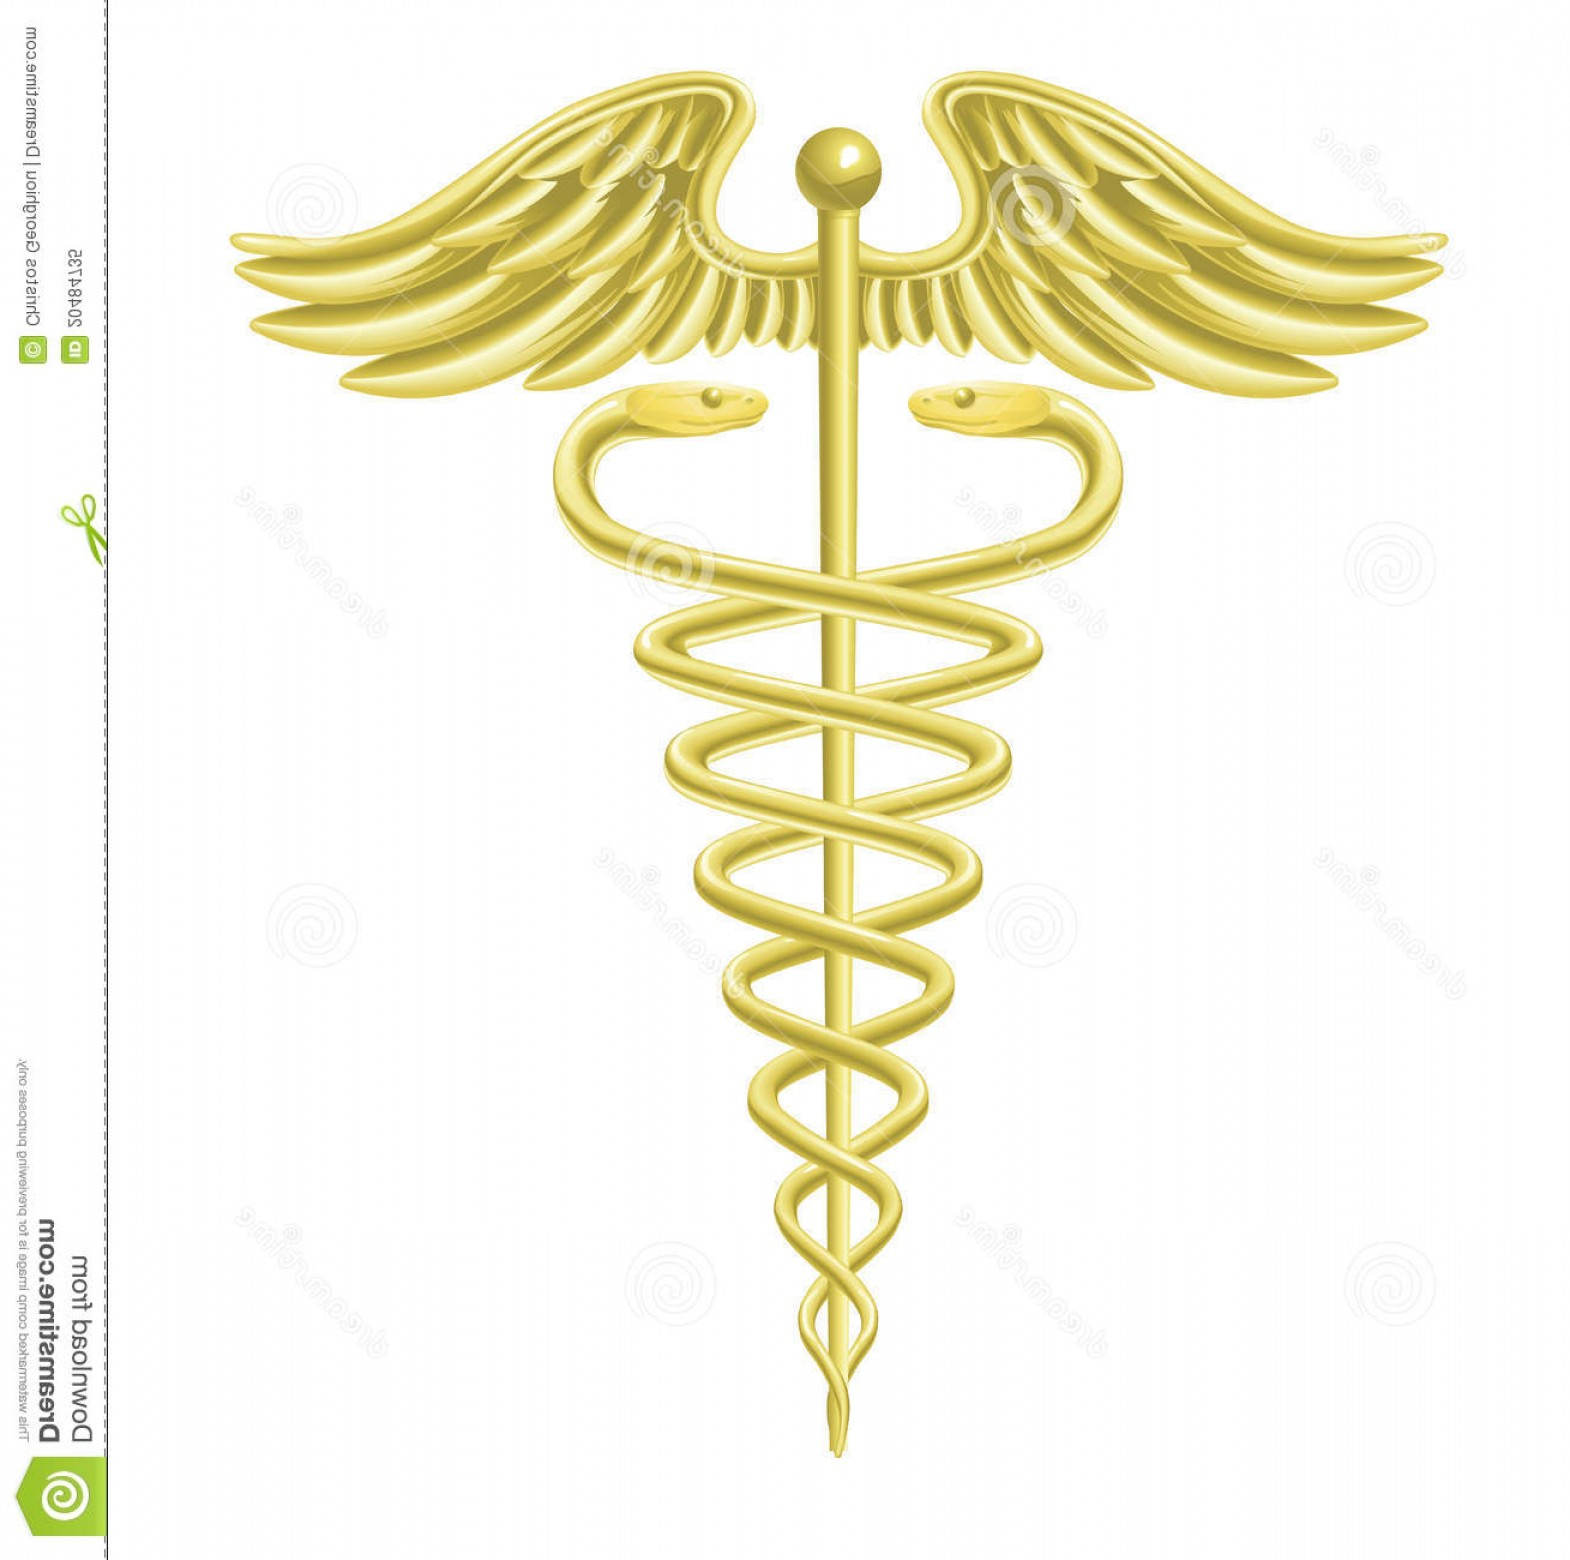 1570x1560 Royalty Free Stock Photo Caduceus Gold Medical Symbol Image